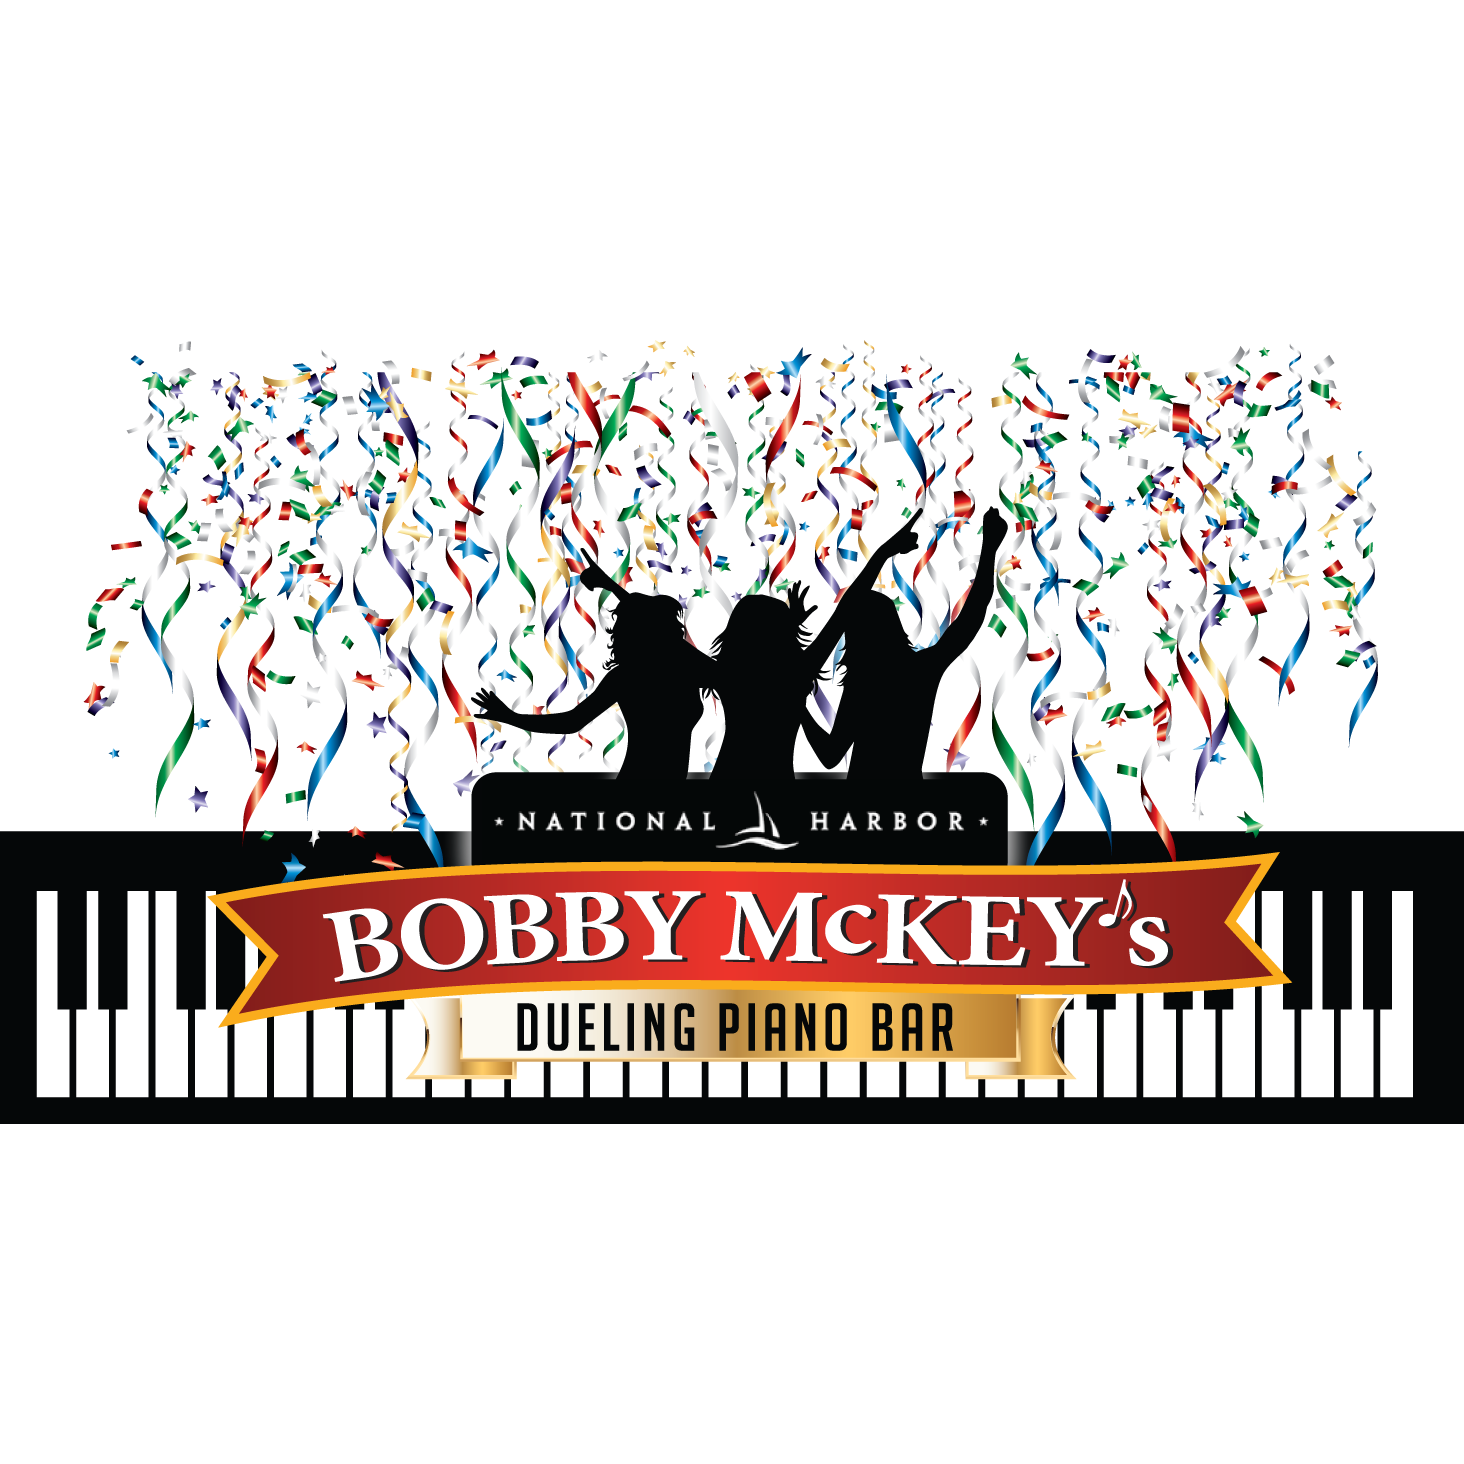 Bobby McKey's Dueling Piano Bar image 8